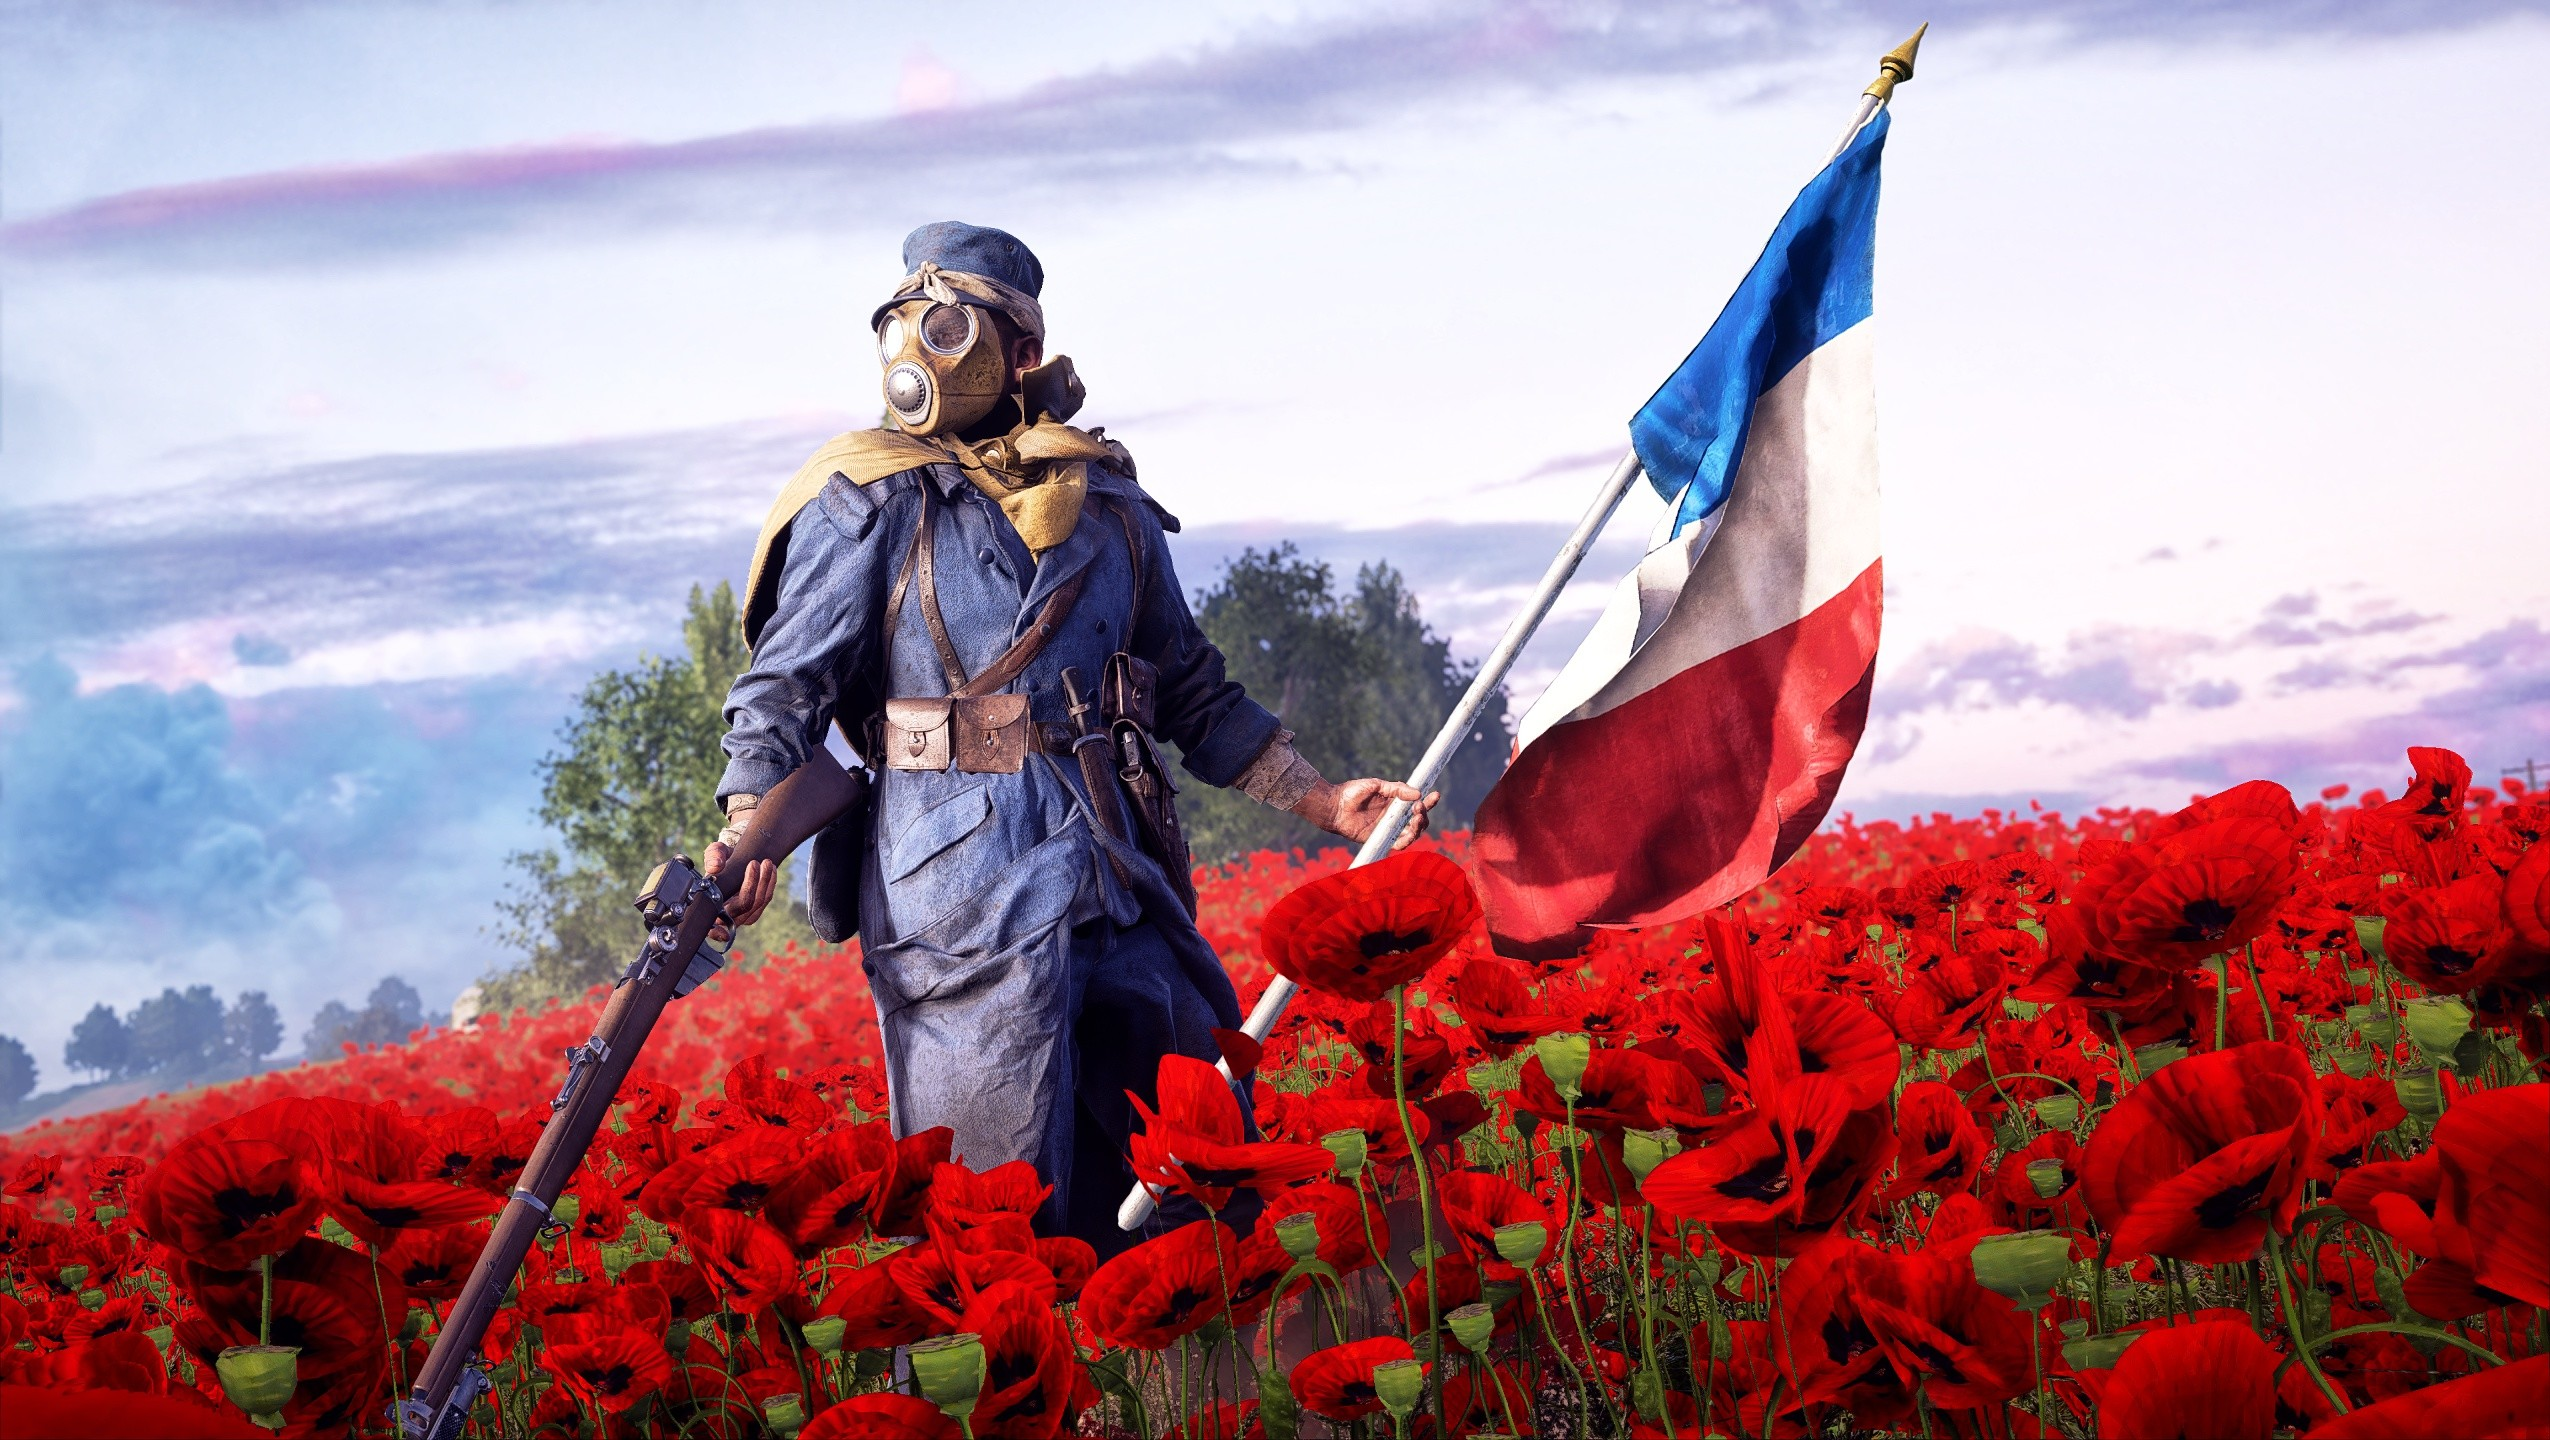 Battlefield 1 Wallpaper together with Vintage Halloween together with 10 Fortnite Skin Concepts Game likewise Mount Rushmore Clipart likewise Firefighter Saves Grandmother By Giving Up Oxygen Mask. on gas mask